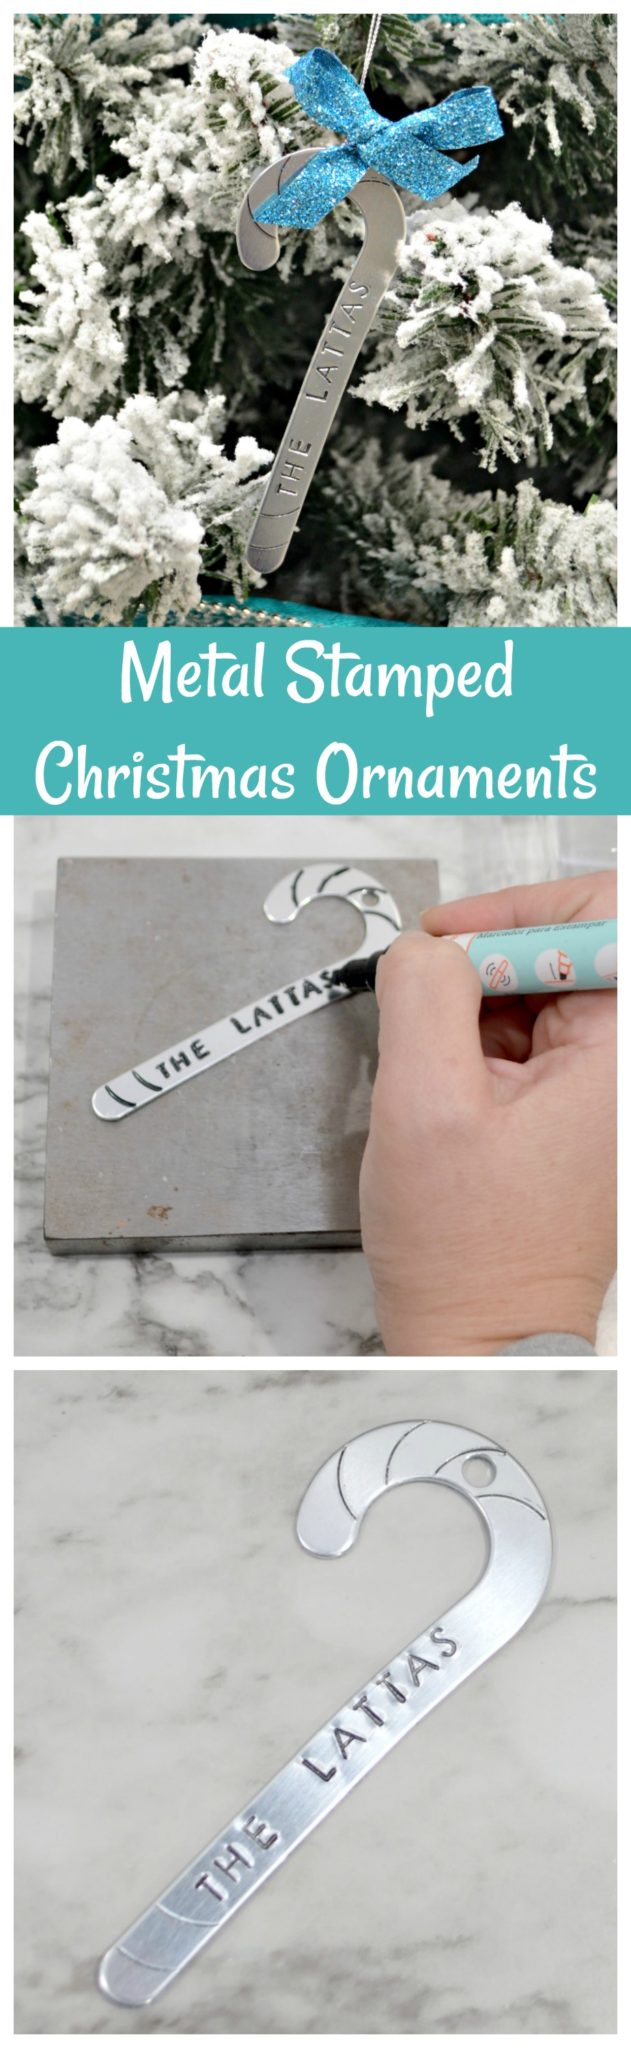 Metal Stamped Christmas Ornaments